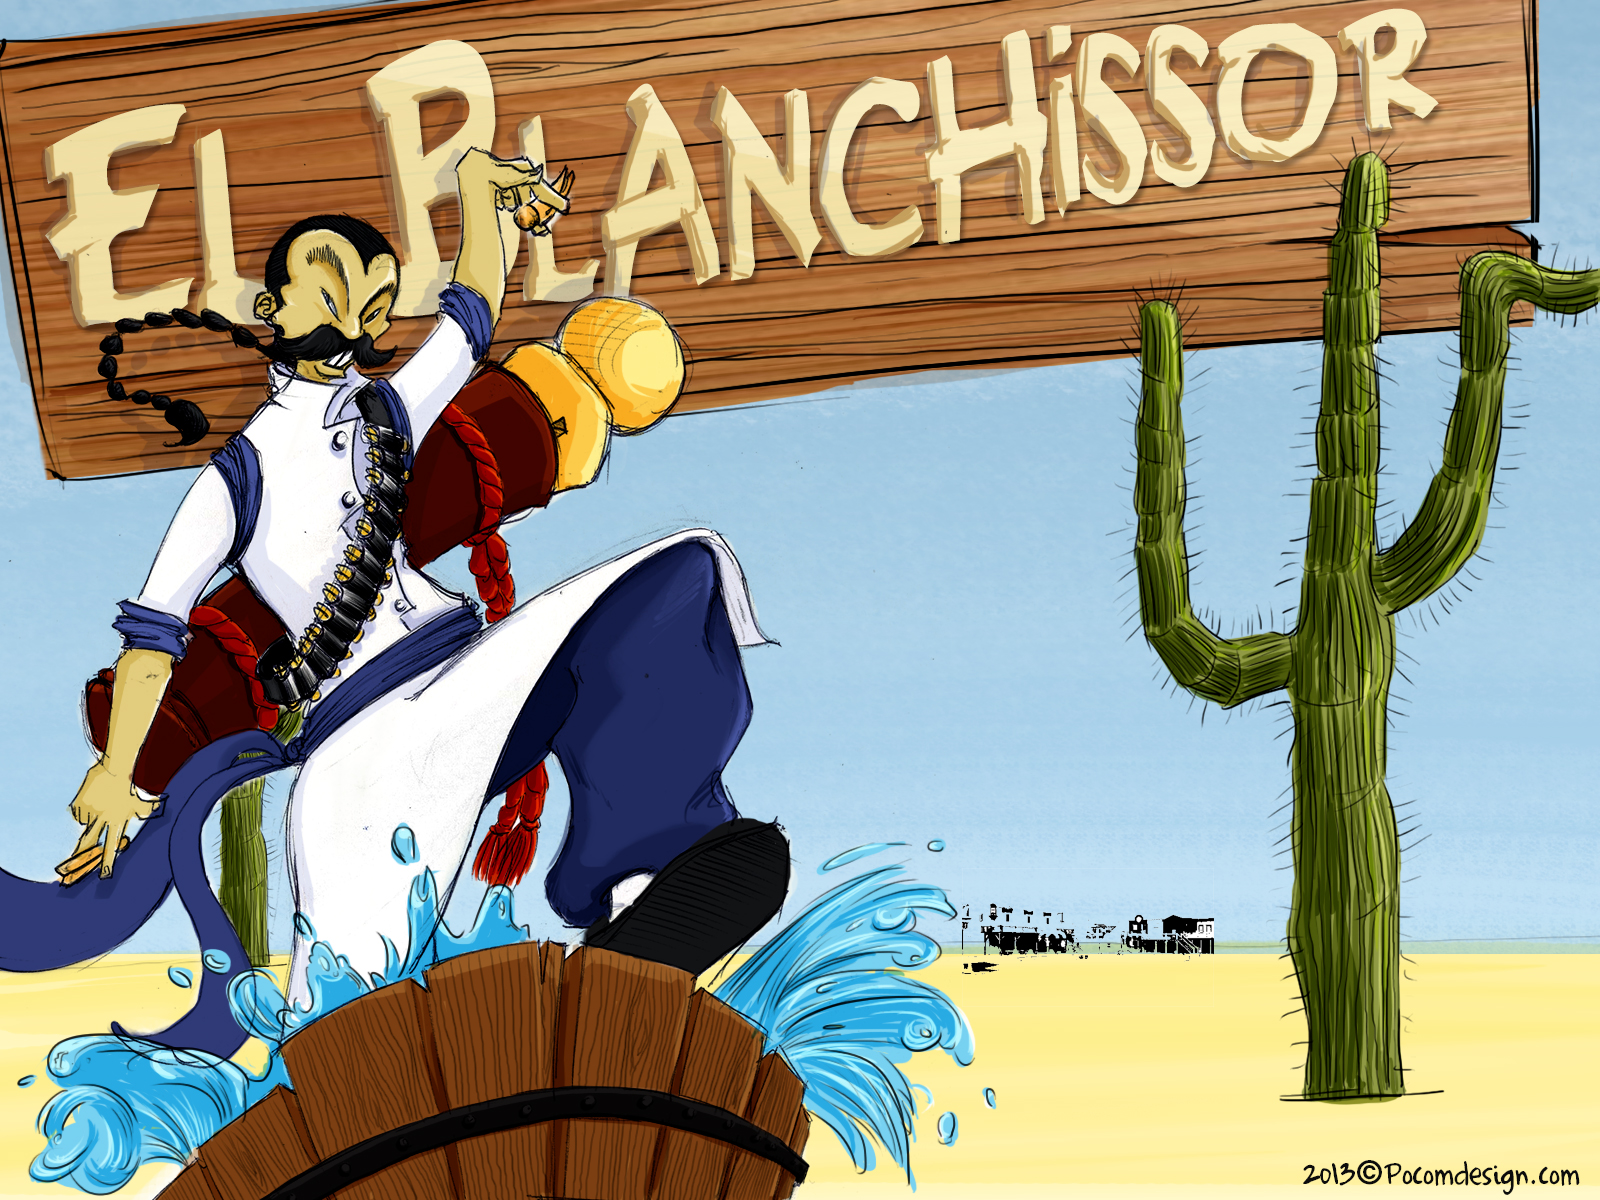 El blanchissor illustration finale